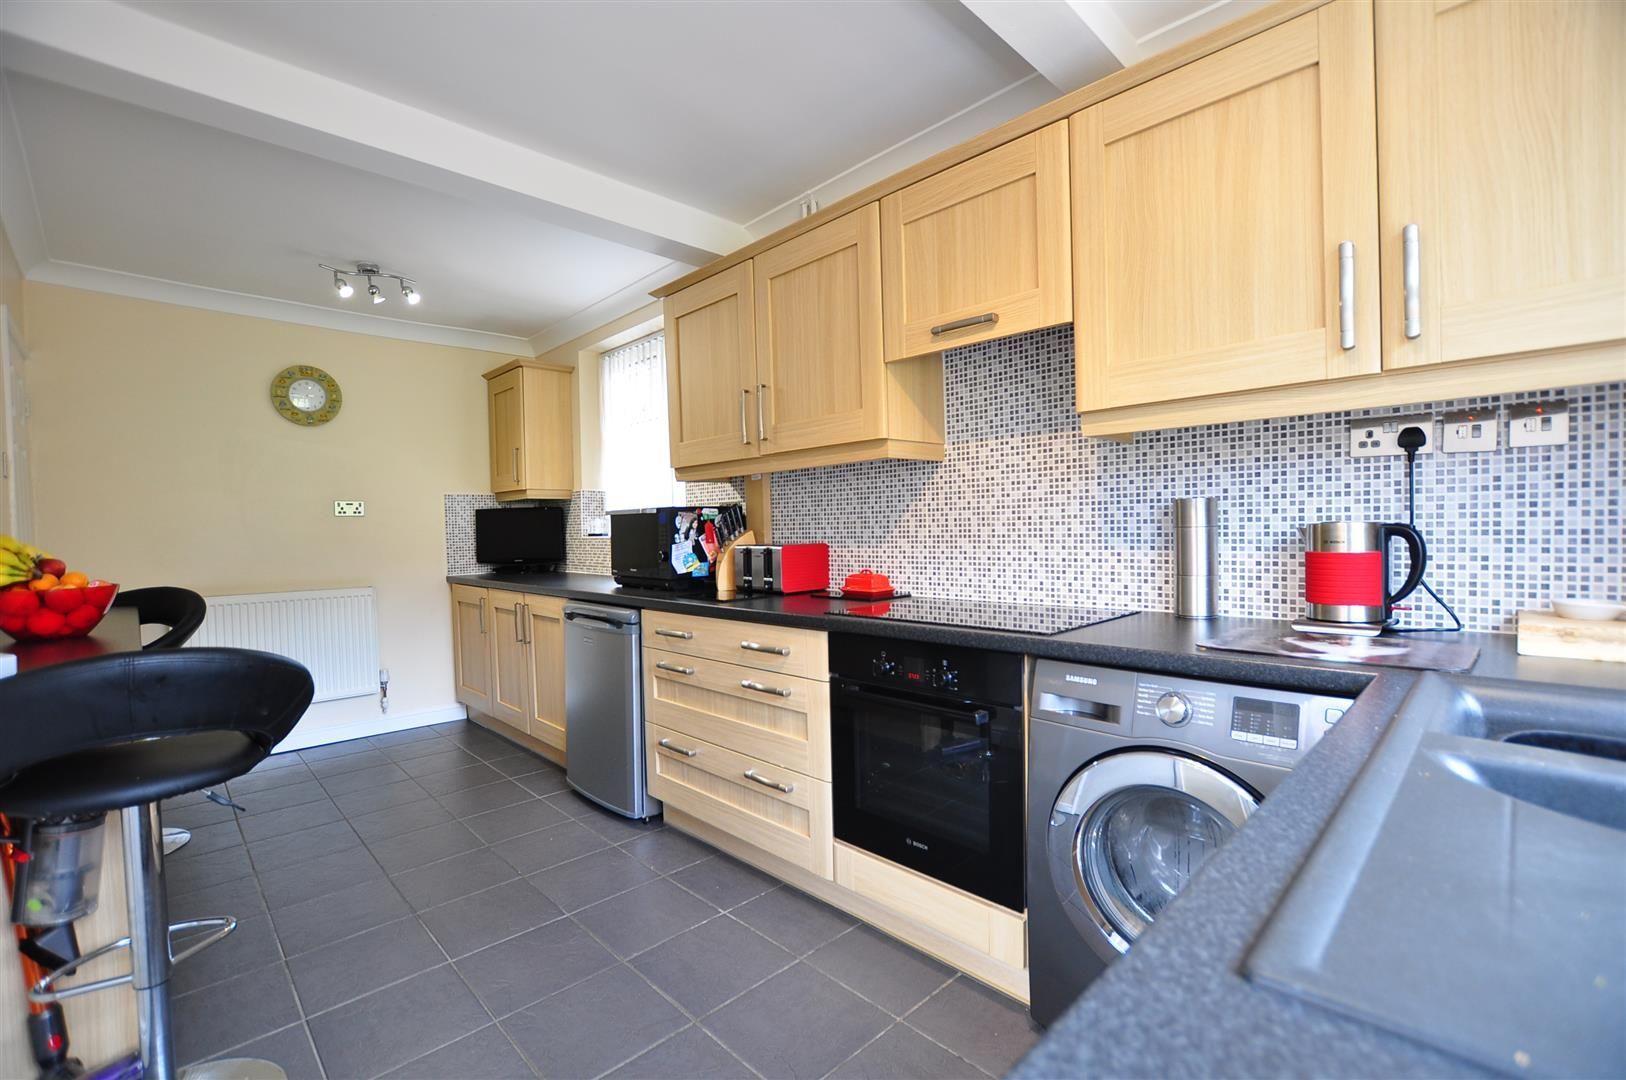 3 bed semi-detached for sale in Lower Gornal 3